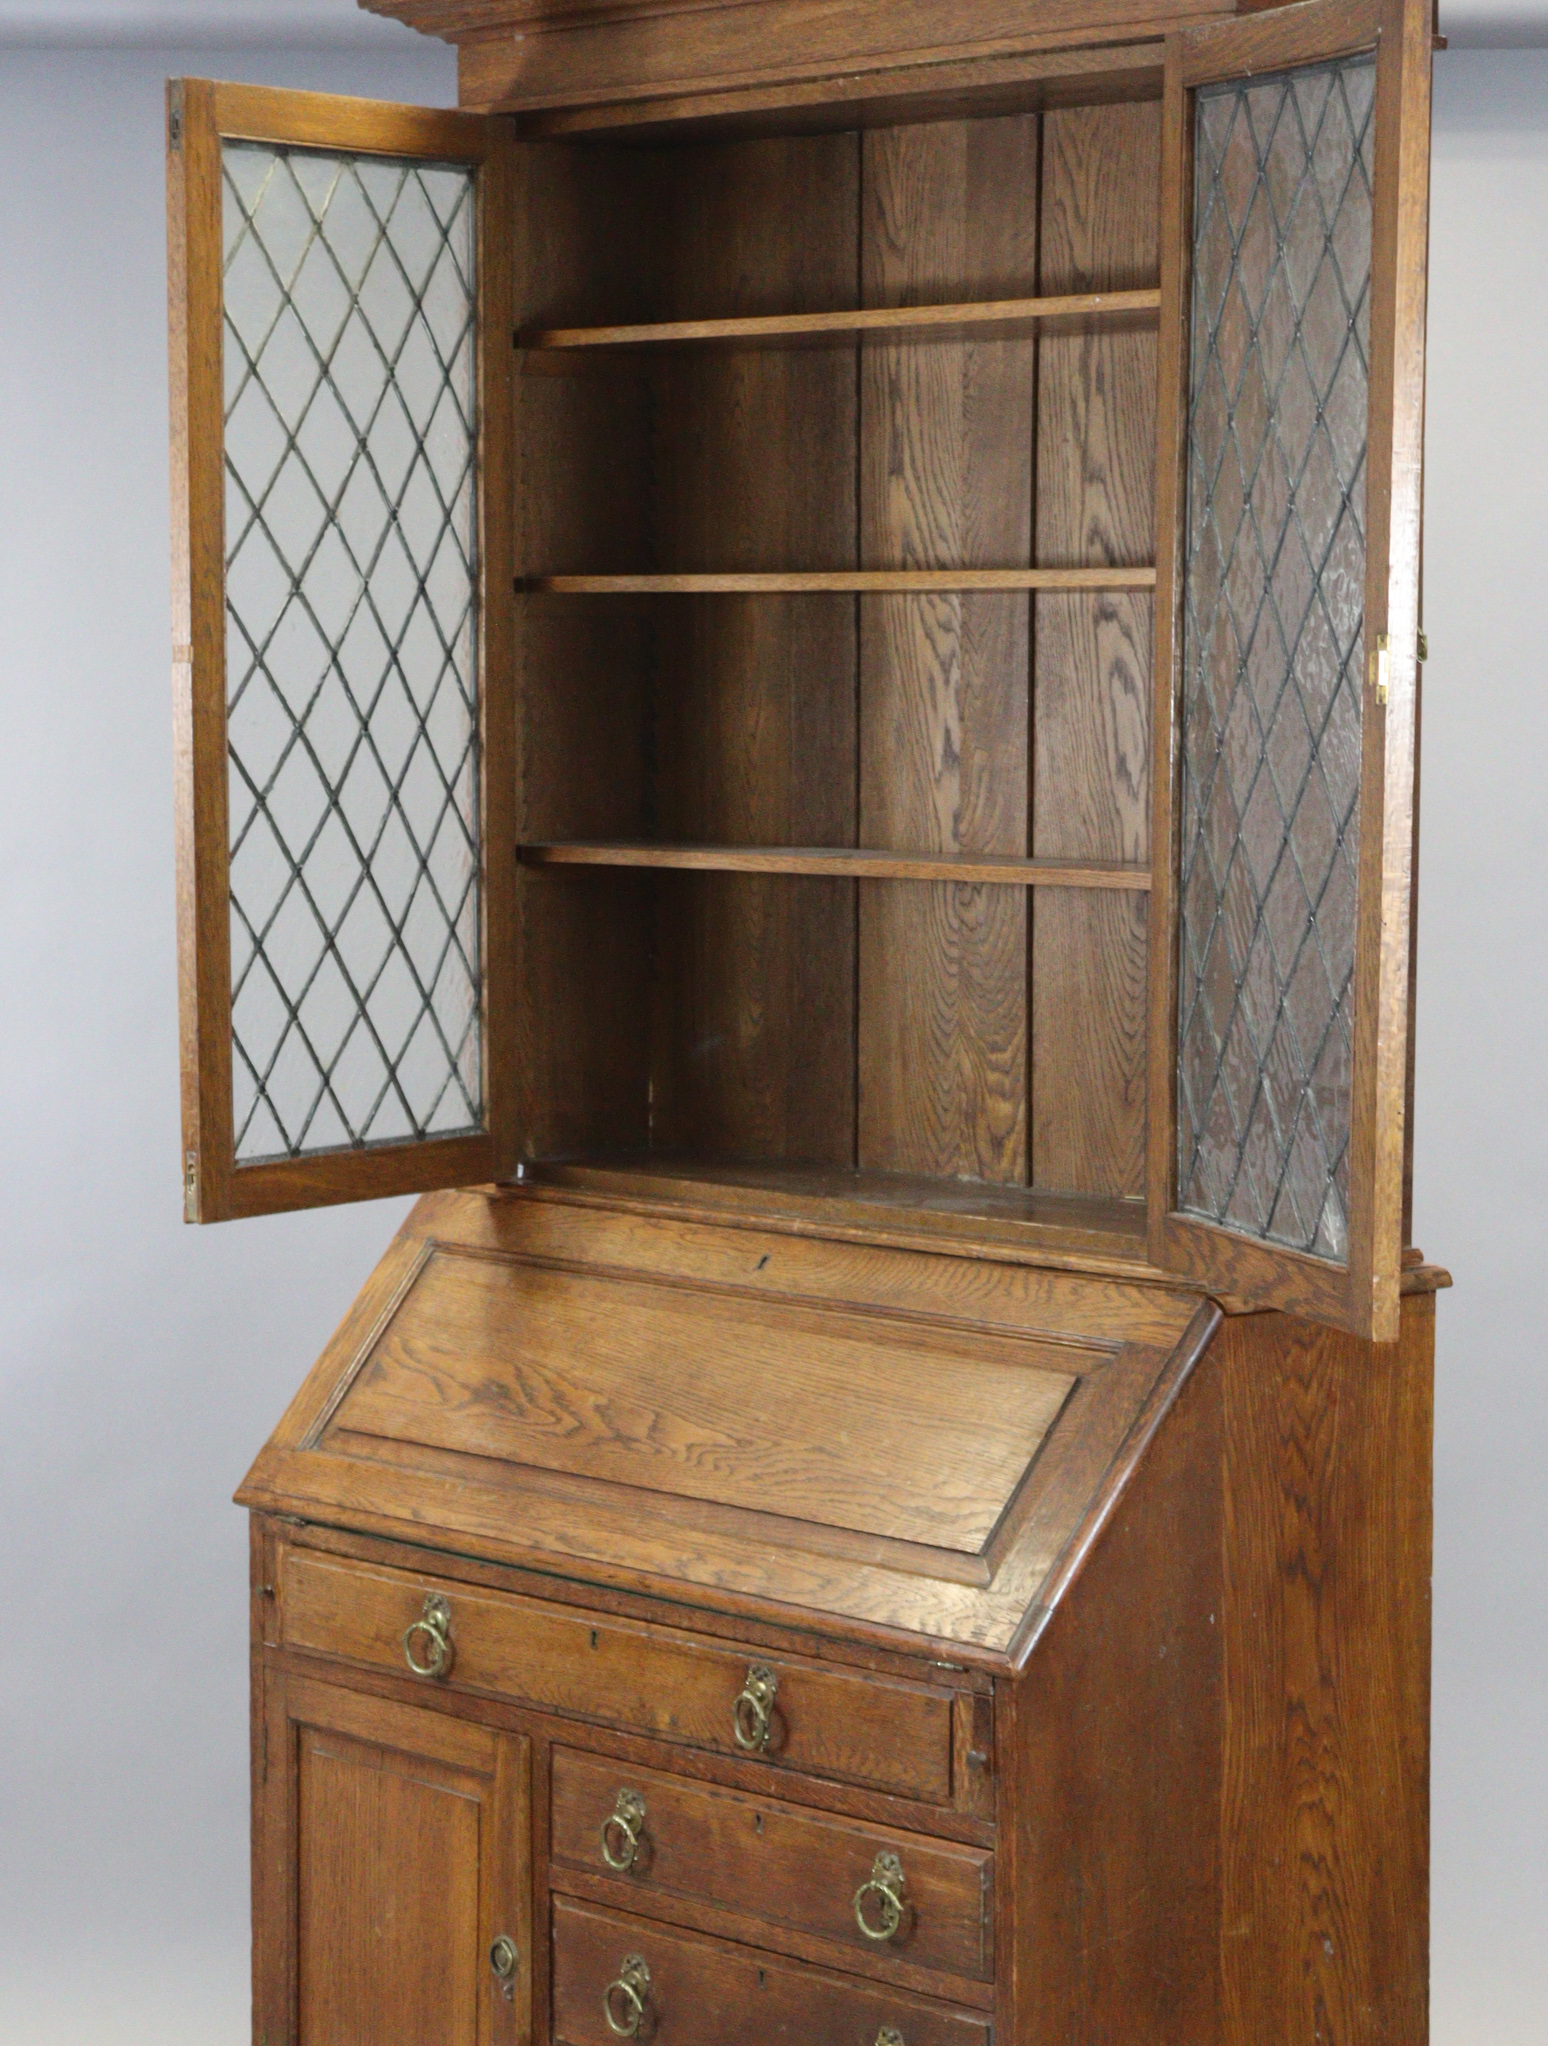 A late 19th/early 20th century oak bureau-bookcase with moulded cornice above a pair of leaded - Image 4 of 7